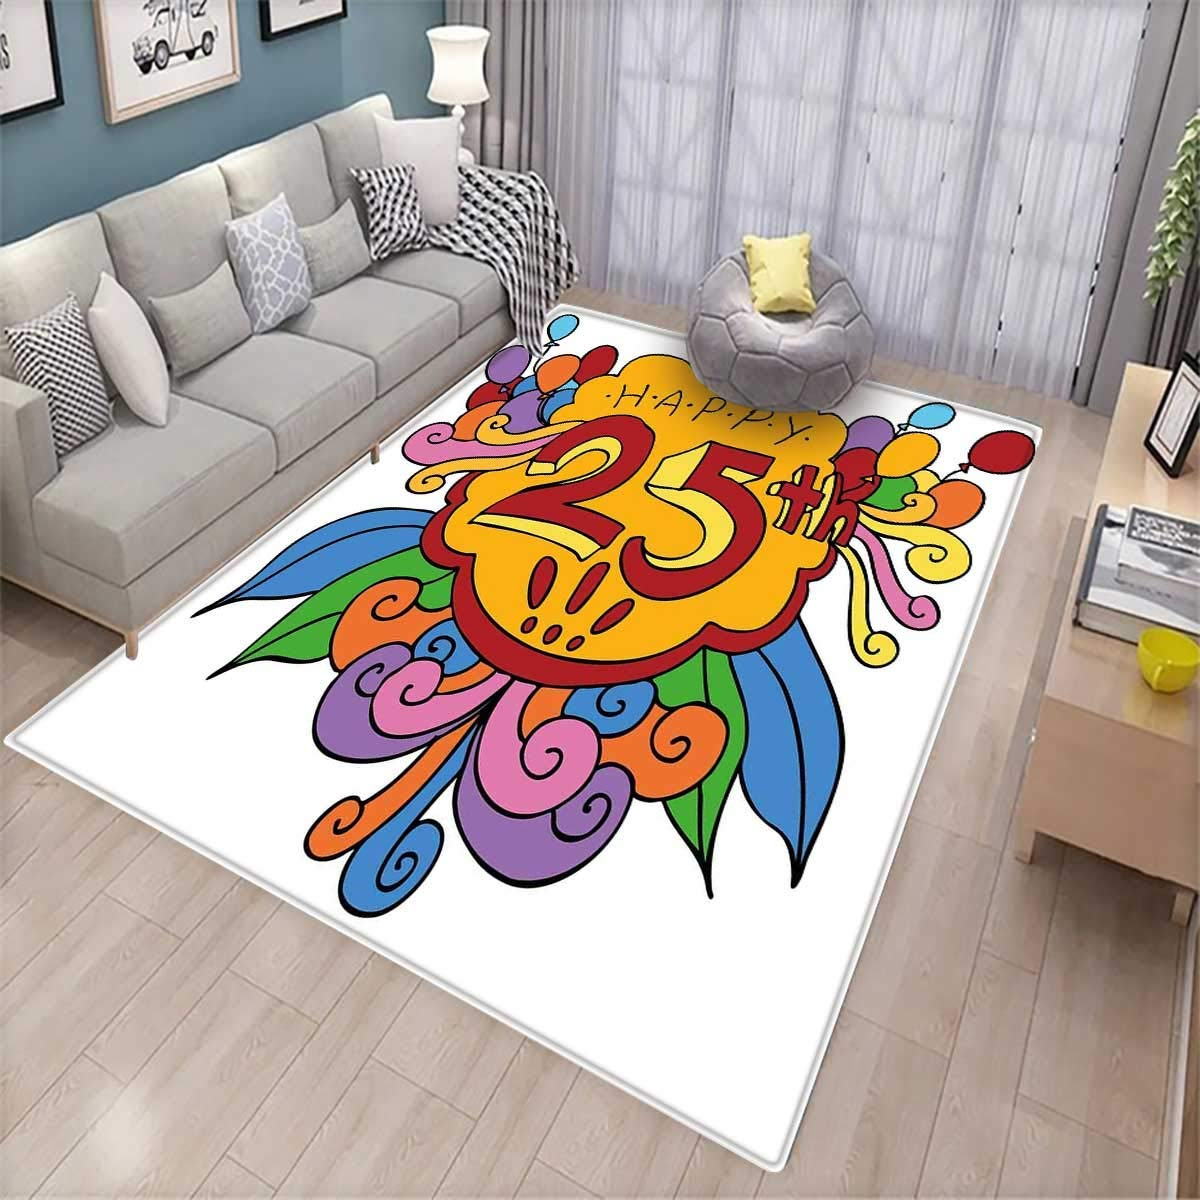 25th Birthday Door Mats Area Rug Cartoon Styled Composition with Floral Details Swirls and Balloons Print Bath Mat Non Slip Multicolor